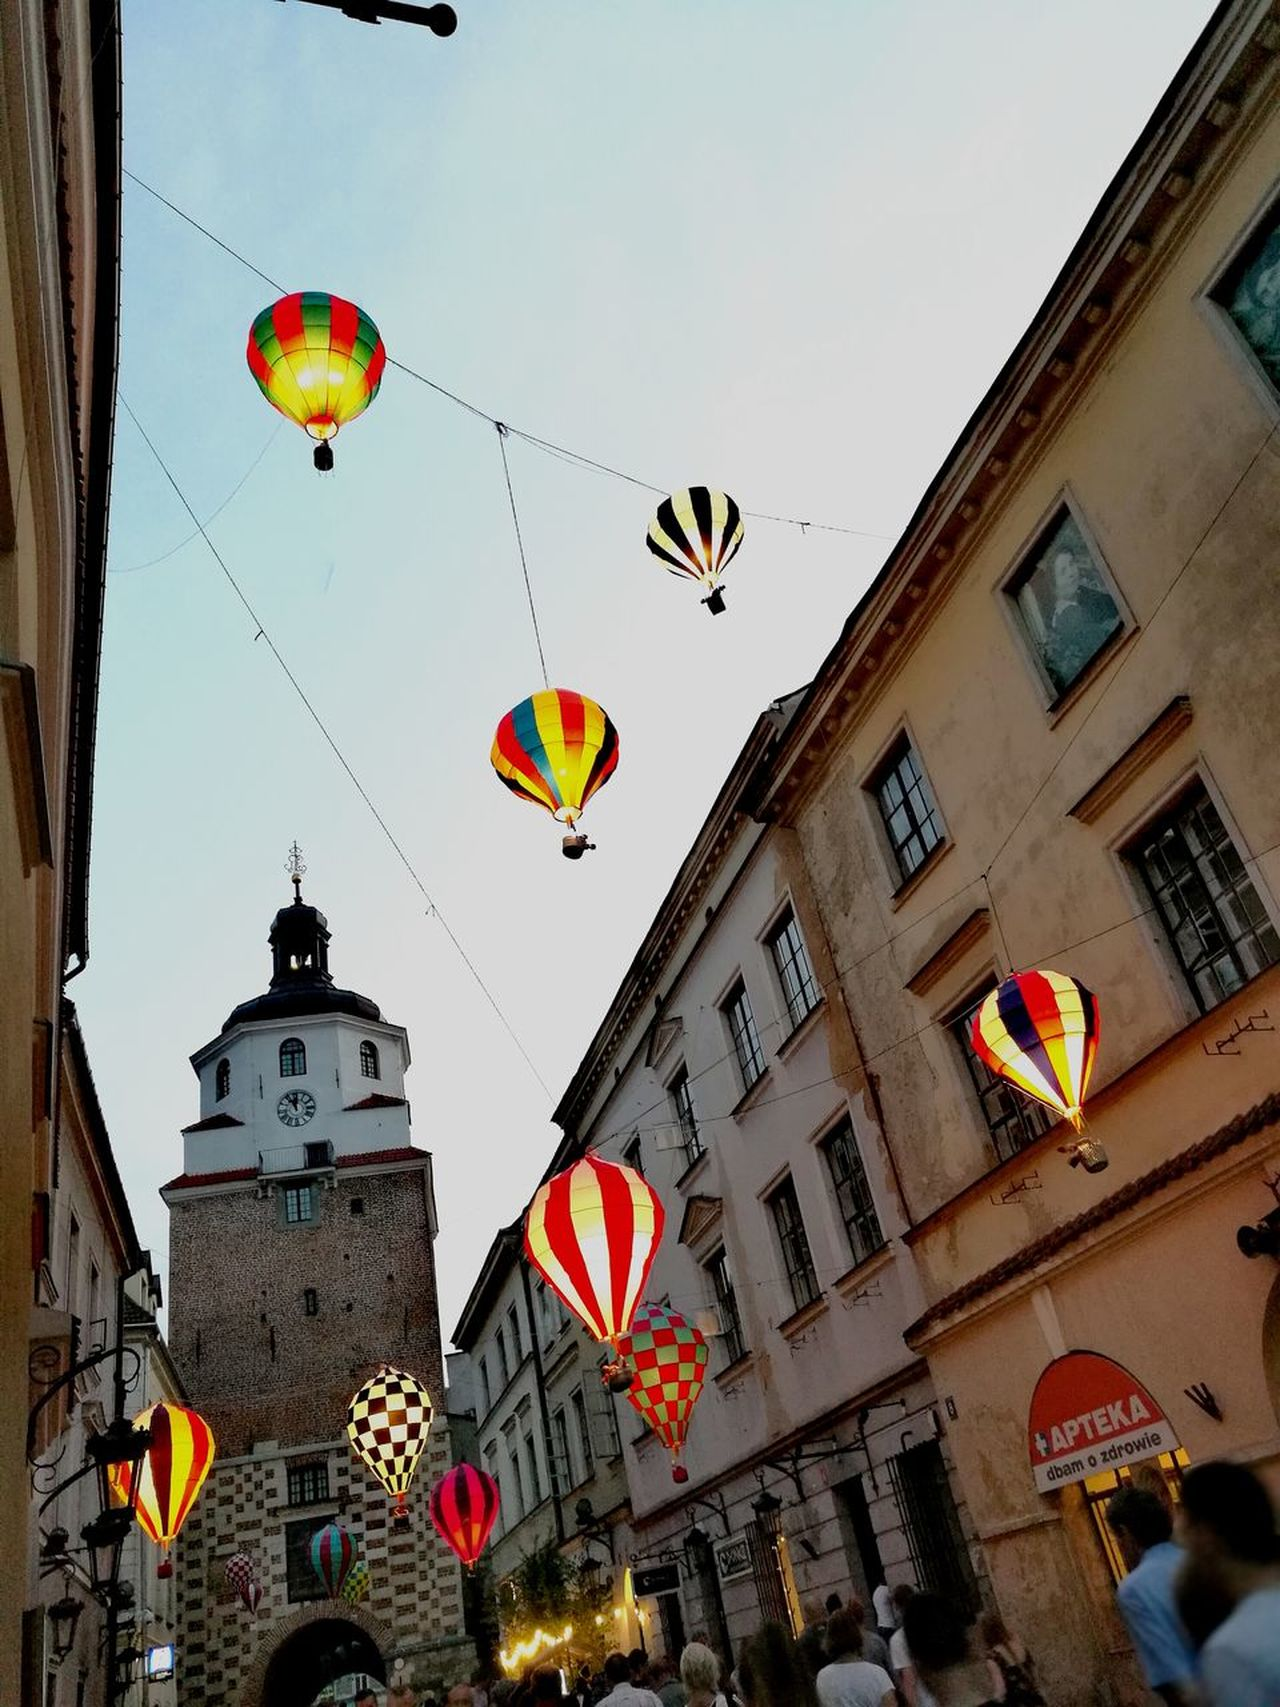 Lublin Grodzka Old Town Ballons Atchitecture Day Lantern Outdoors Travel Destinations Multi Colored Streetphotography Lublin Poland